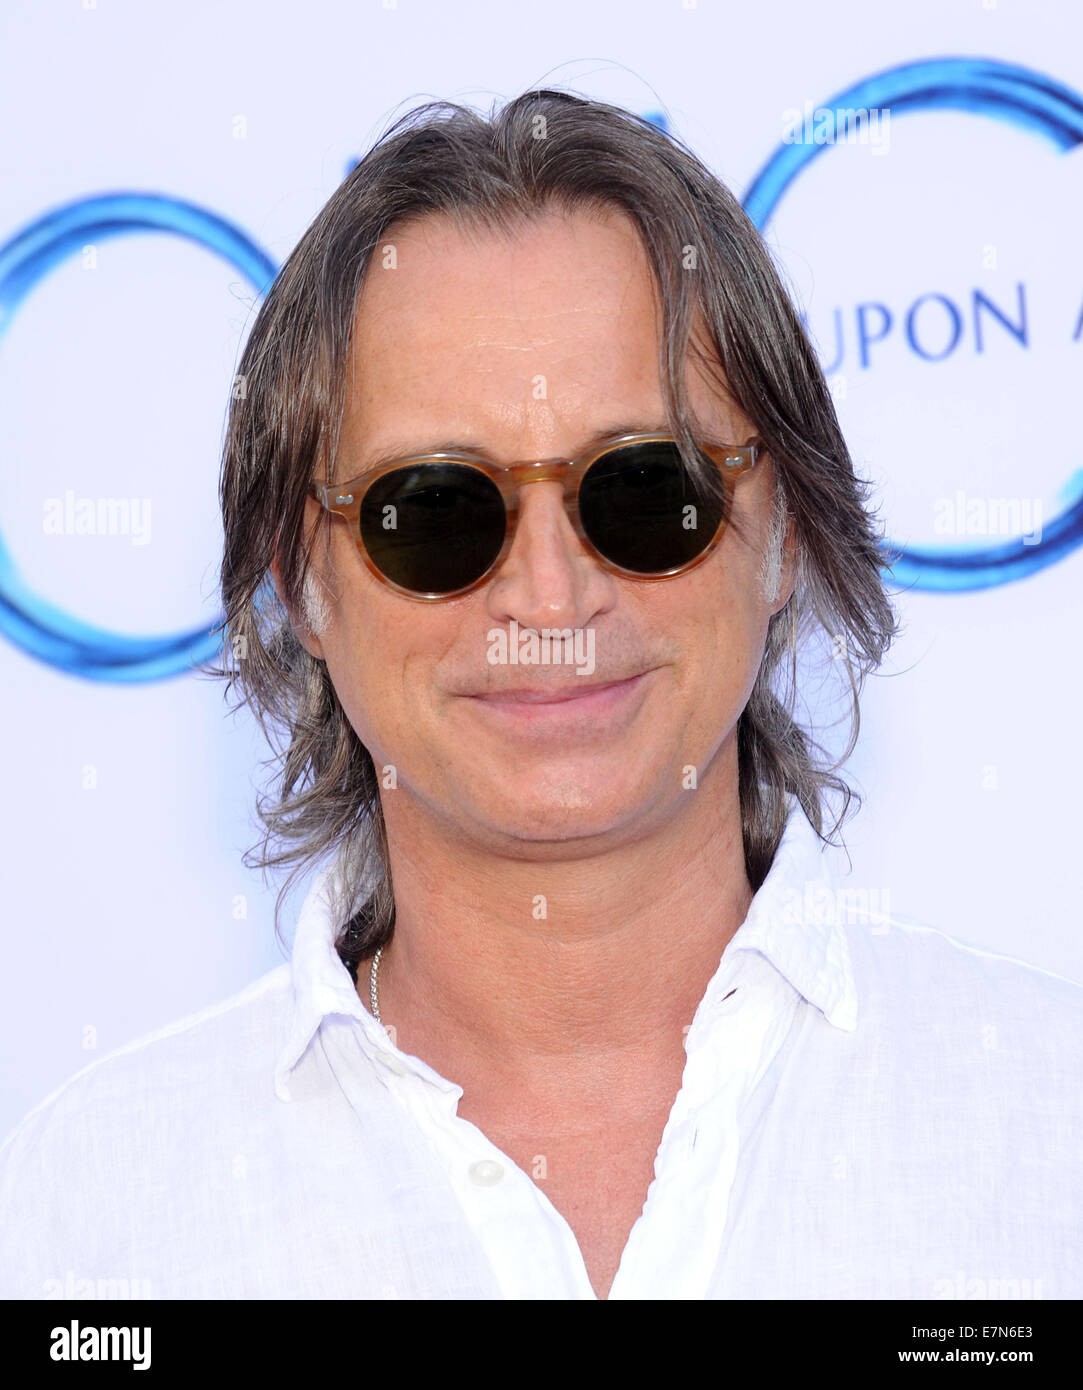 Hollywood, California, USA. 21st Sep, 2014. Robert Carlyle arrives for the premiere of the ABC's 'Once Upon - Stock Image